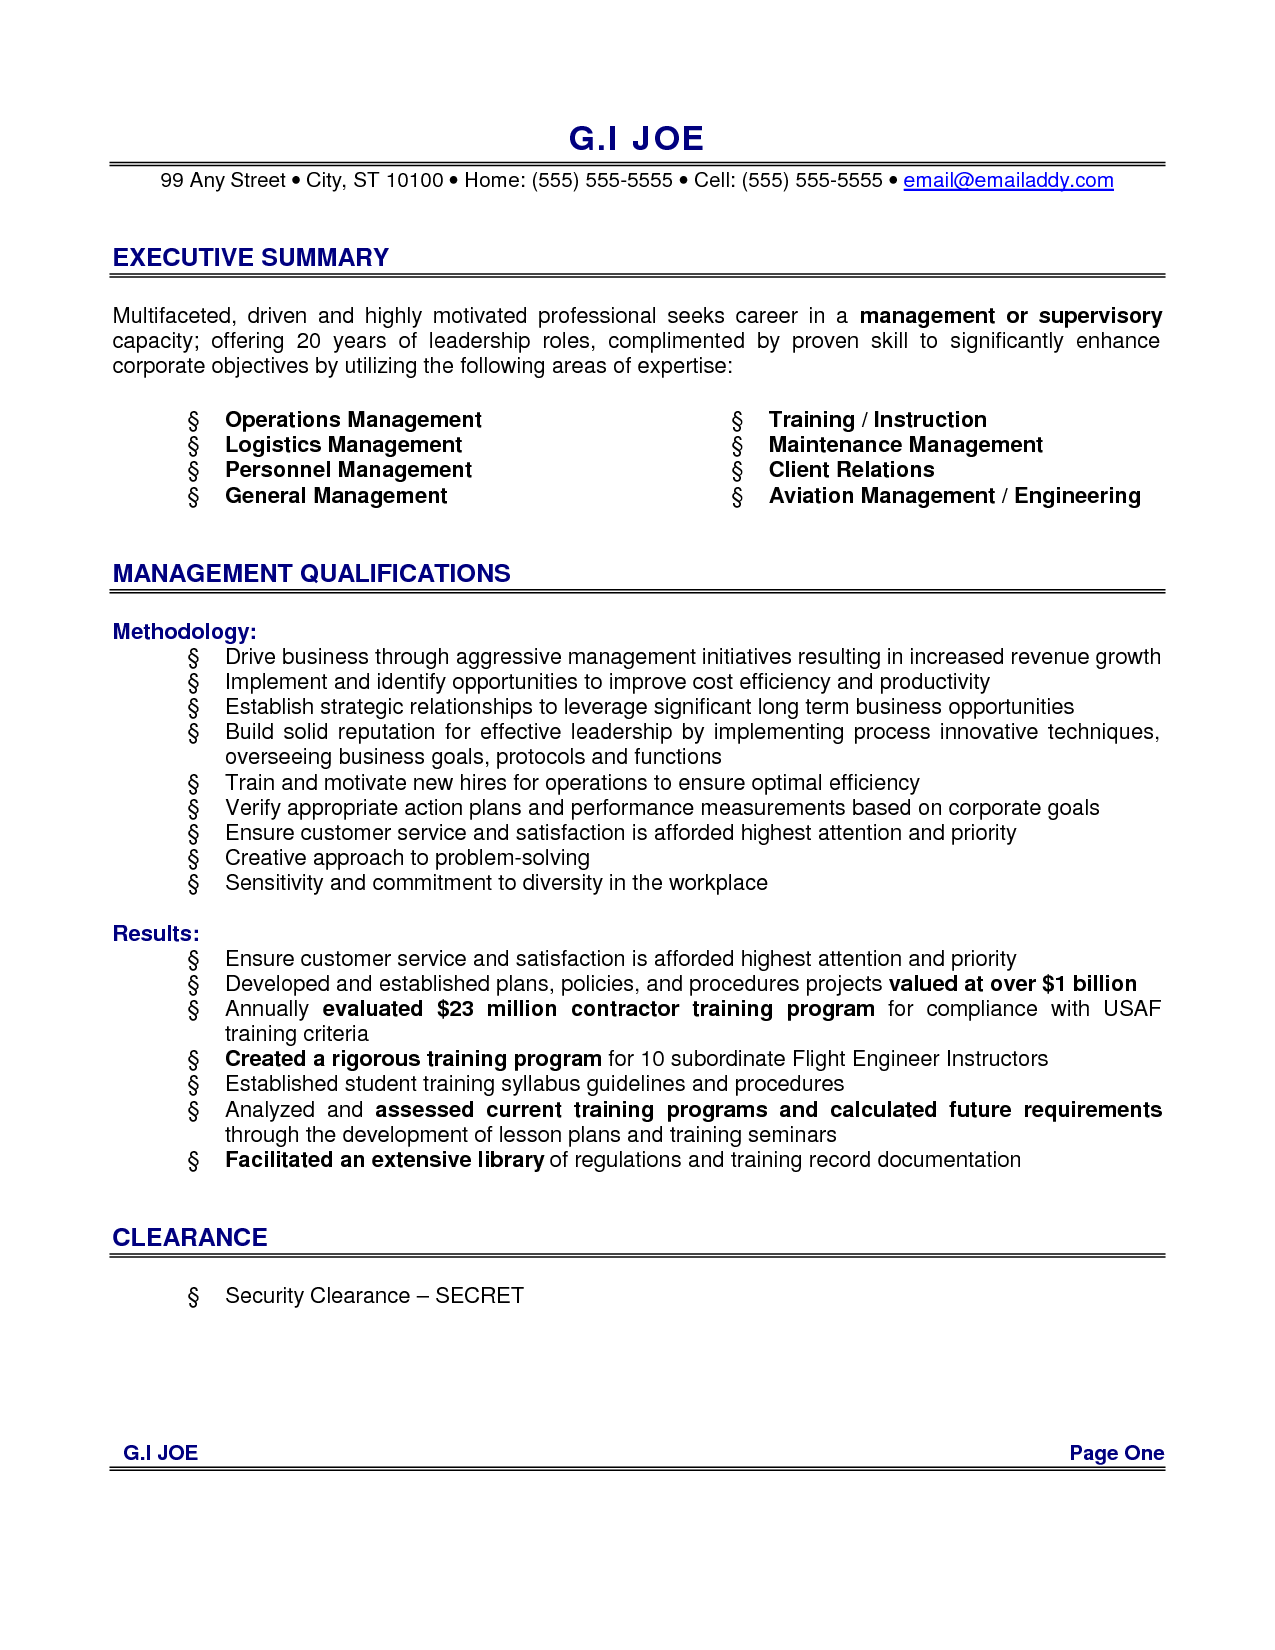 resume examples for executive summary with management qualifications executive resume example as writing guidelines